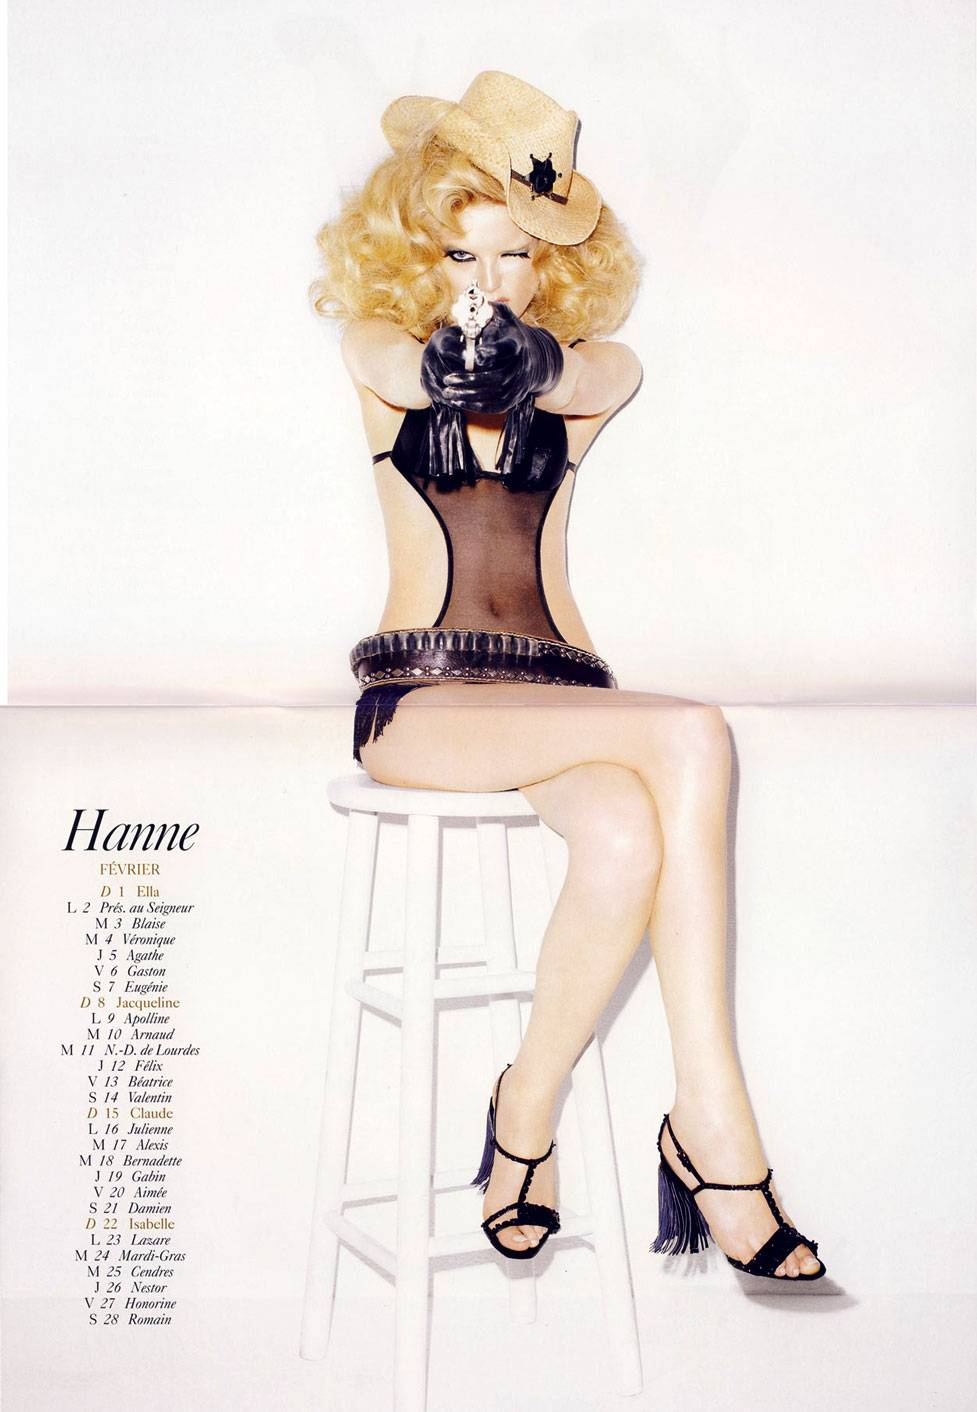 French Vogue 2009 calendar by Terry Richardson - февраль. Hanne